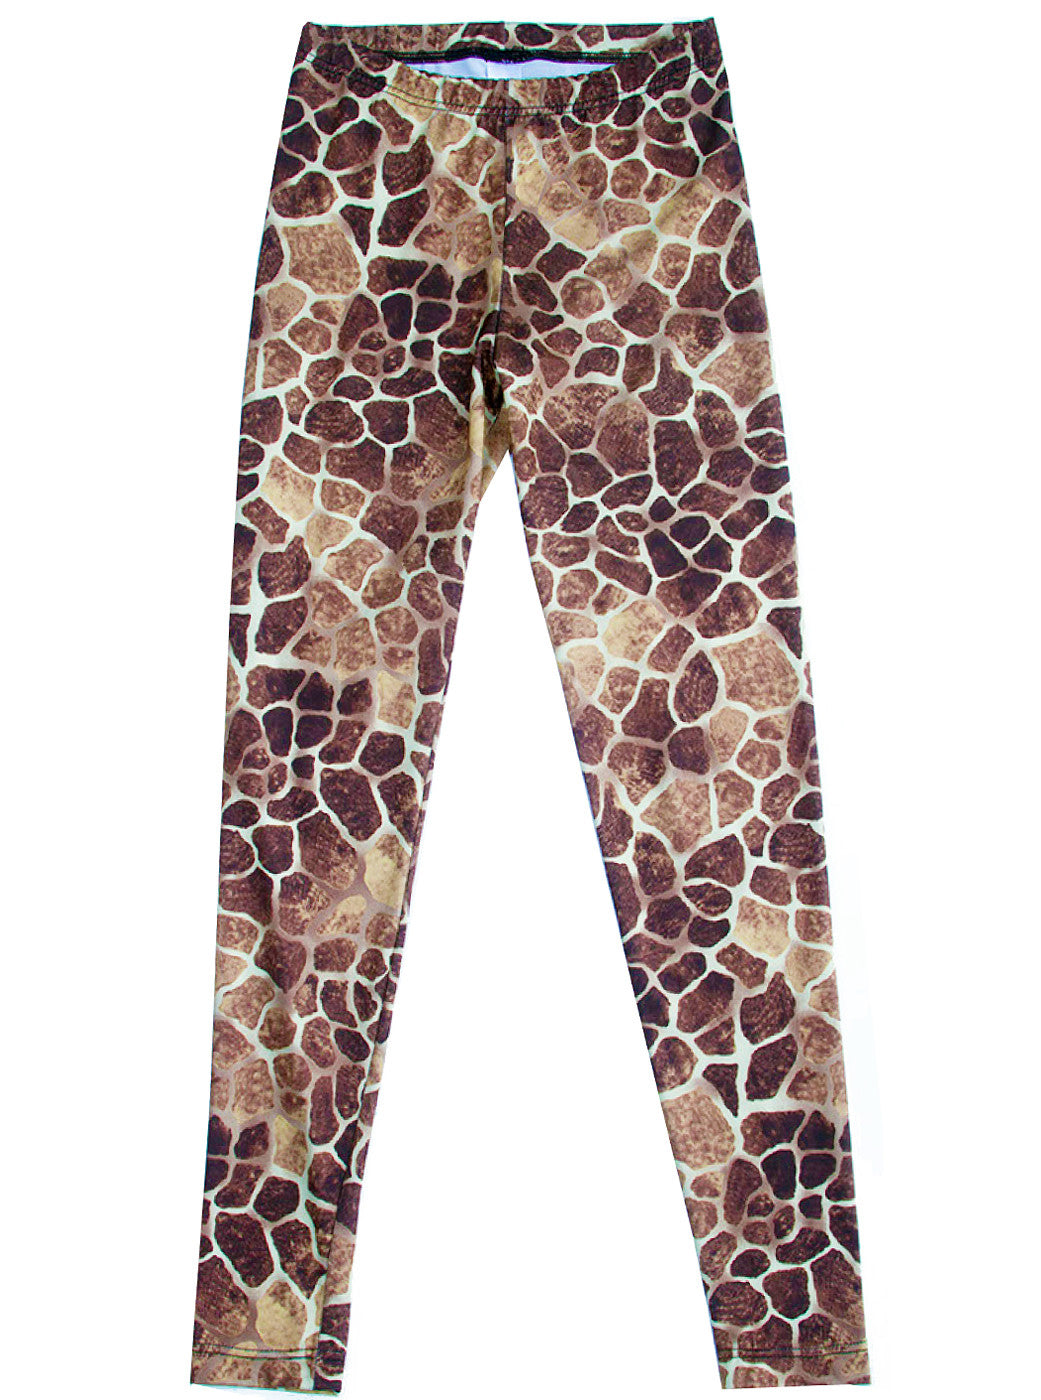 4e04418e3605d Home > Products > Giraffe Animal Print Spandex Leggings